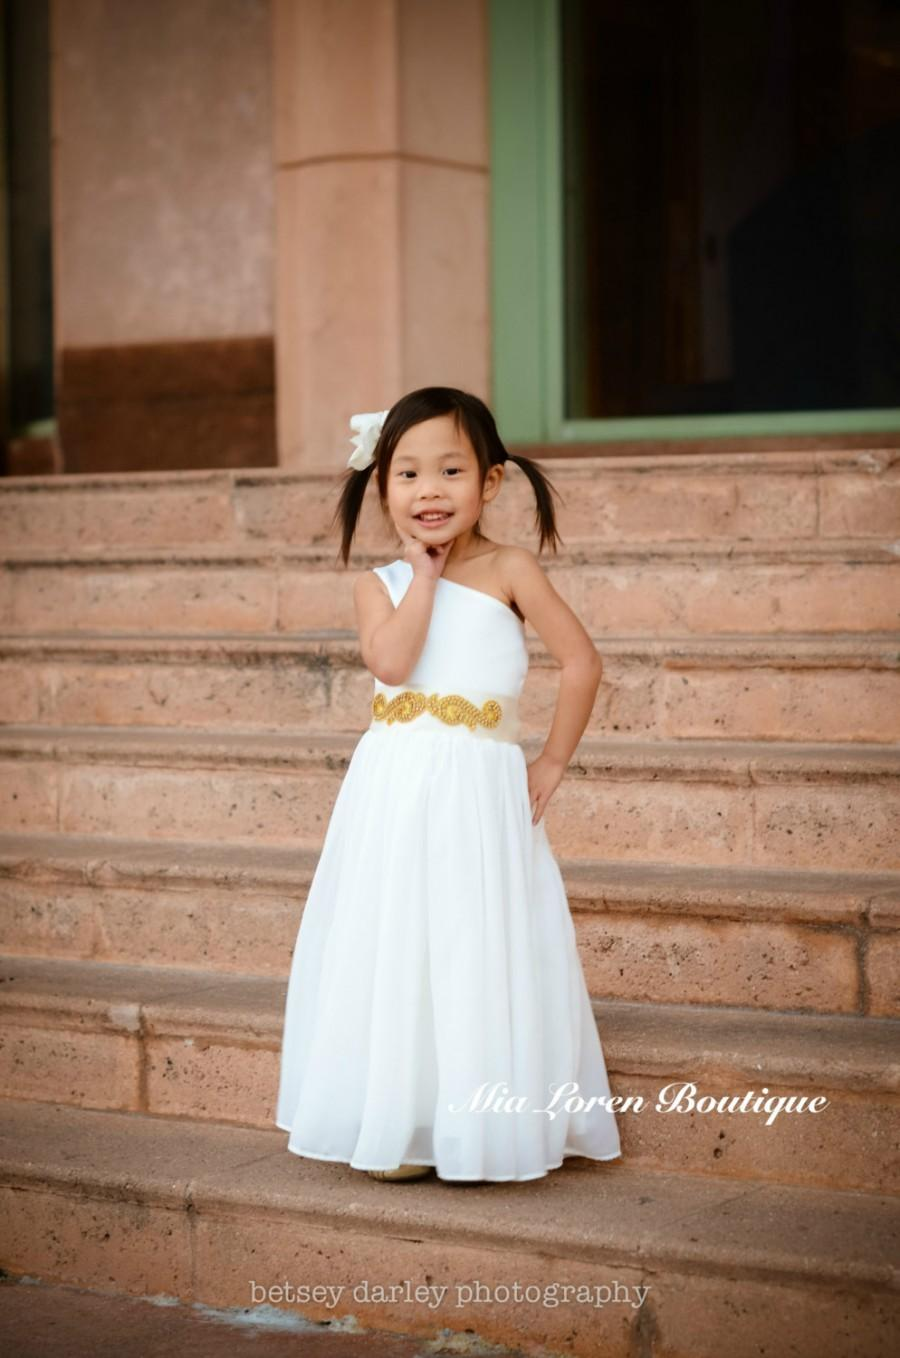 fdcdfe282b3c Bridal White Flower Girl Dress, with Gold or Silver Rhinestone Sash {The  Mia Dress Style No. 108} Made in the USA